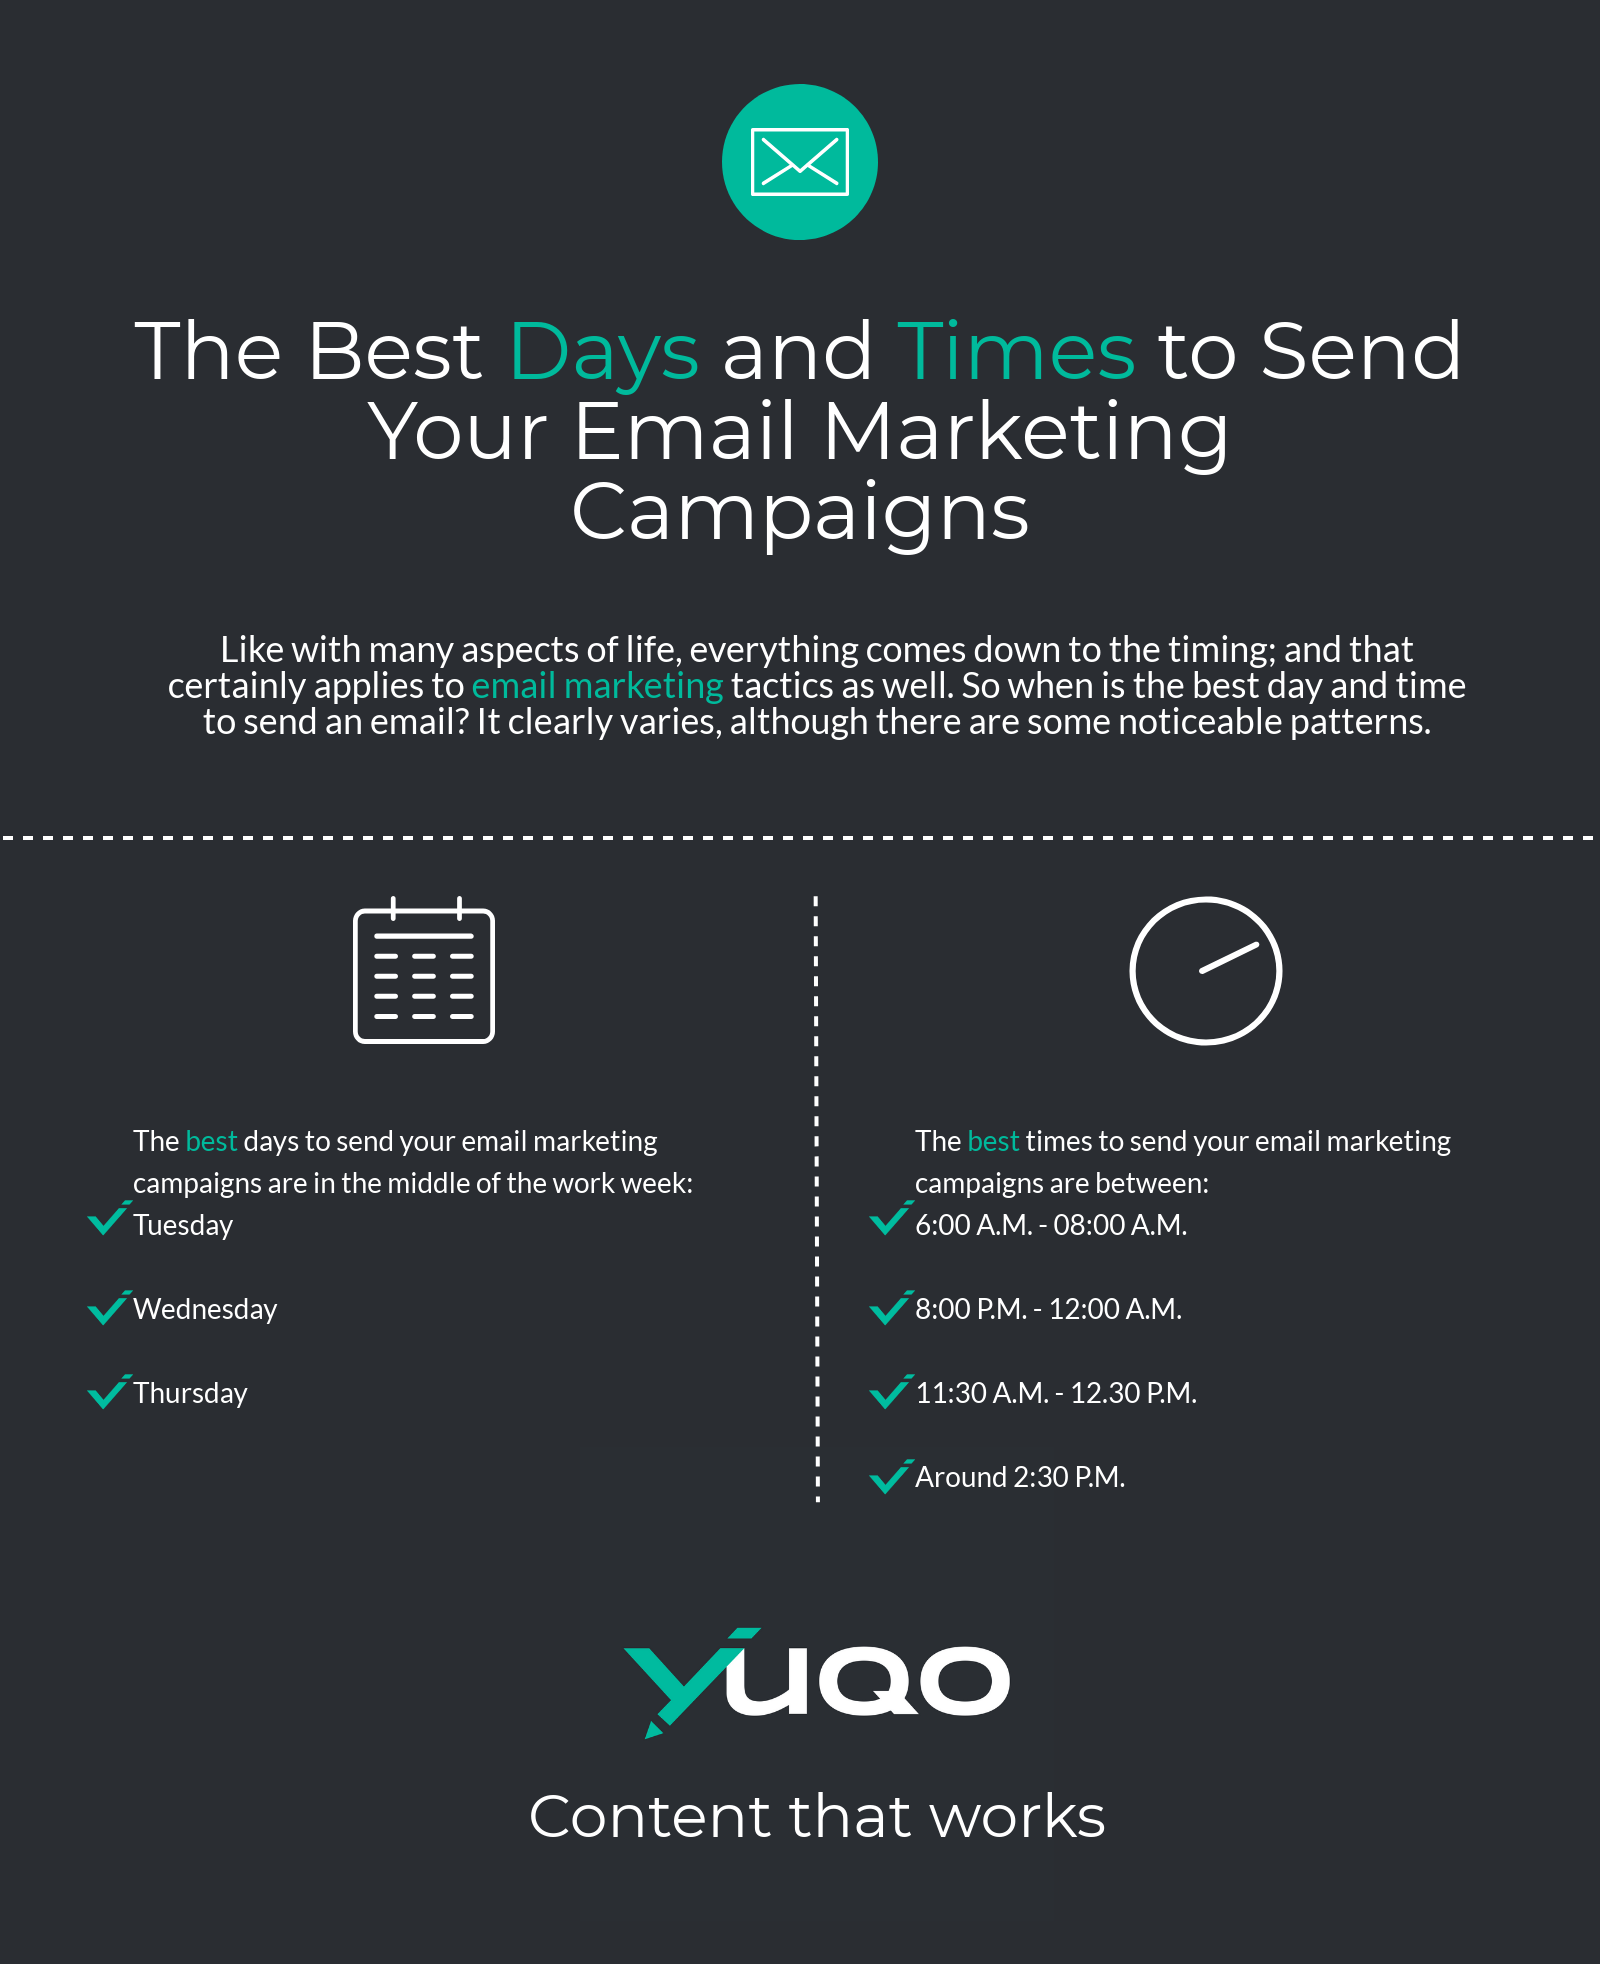 There are many things you can do to make sure your emails reach their full potential, so make sure to incorporate as many tactics as possible to ensure your messages stand out from the rest.